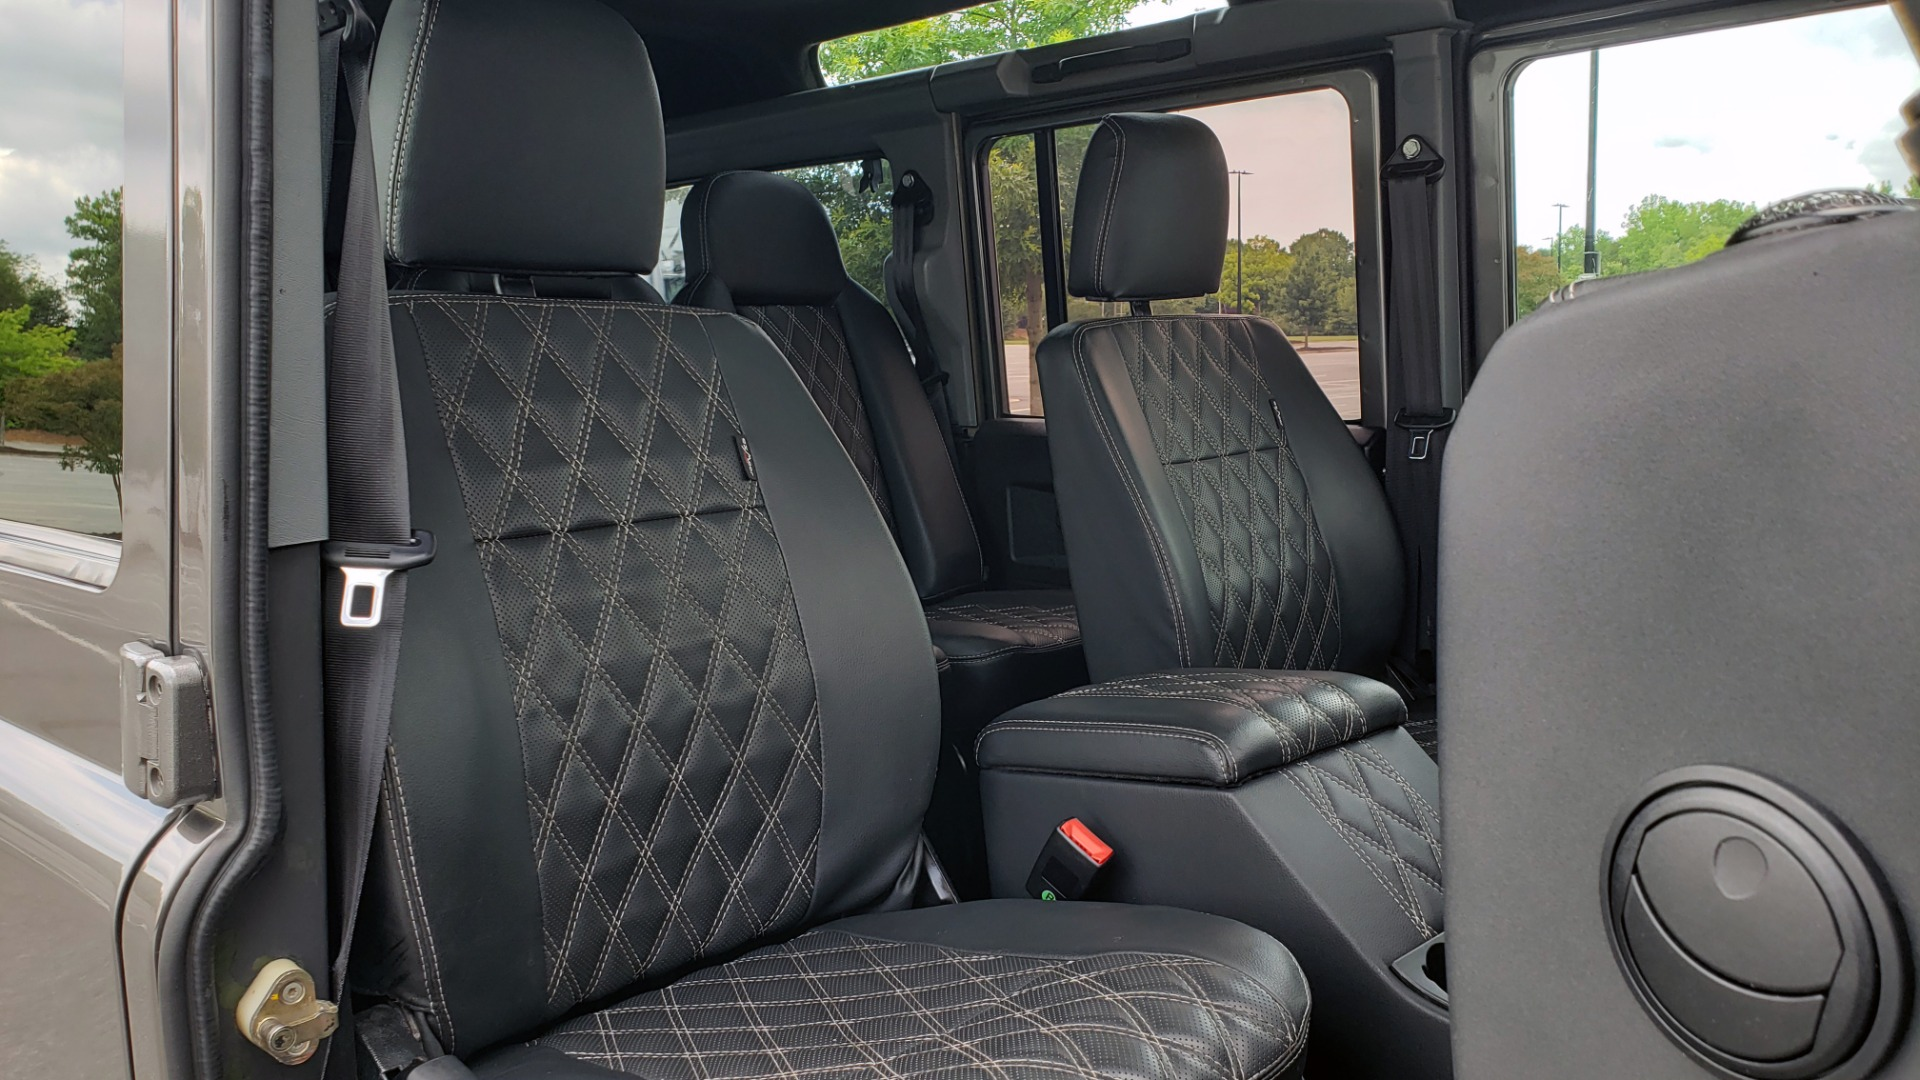 Used 1988 Land Rover DEFENDER 110 CUSTOM 4X4 / LS V8 / PUSH BUTTON AUTO / LEATHER / ROOF RACK for sale $147,888 at Formula Imports in Charlotte NC 28227 66